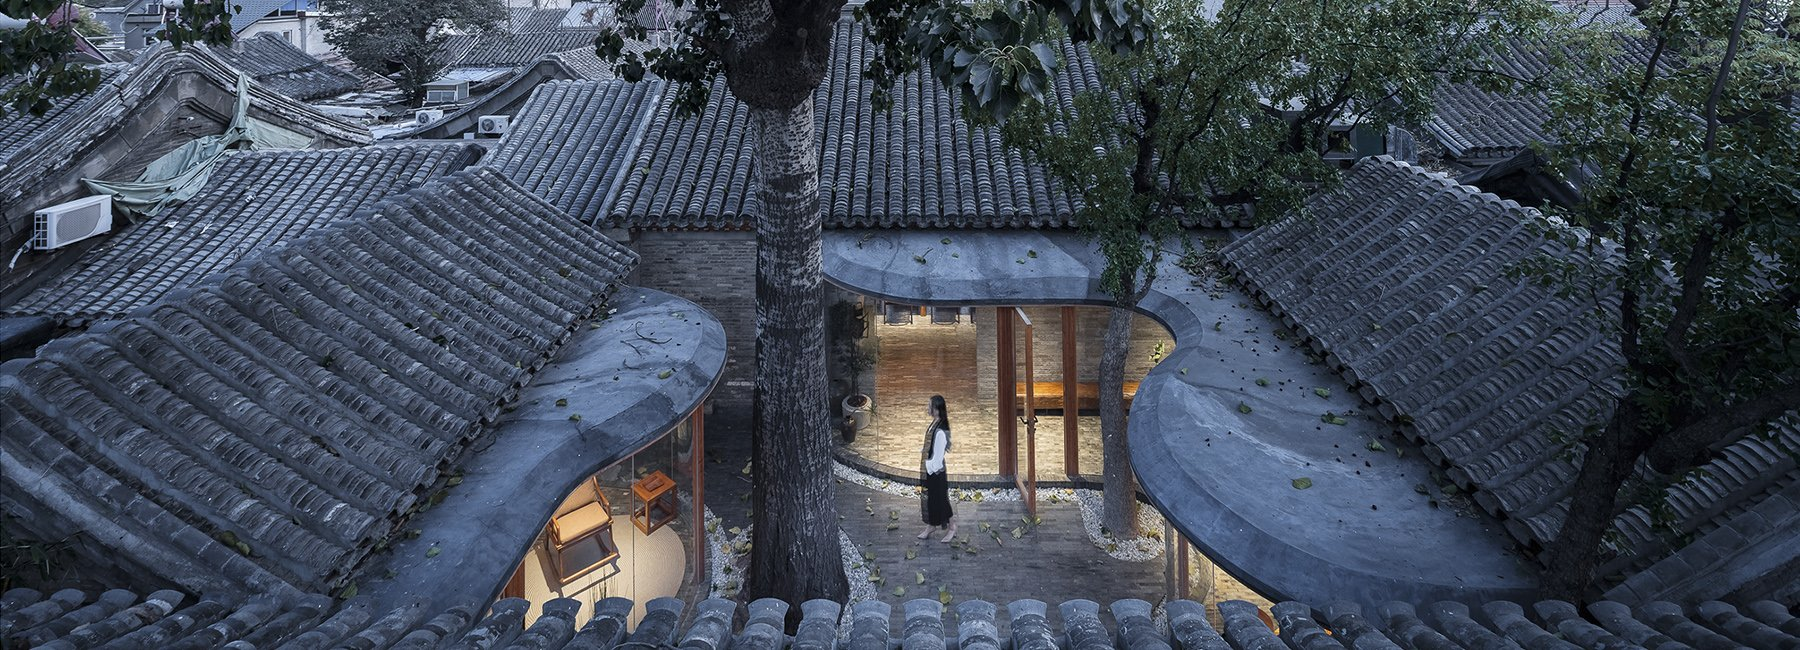 Archstudio renovates a Siheyuan in China